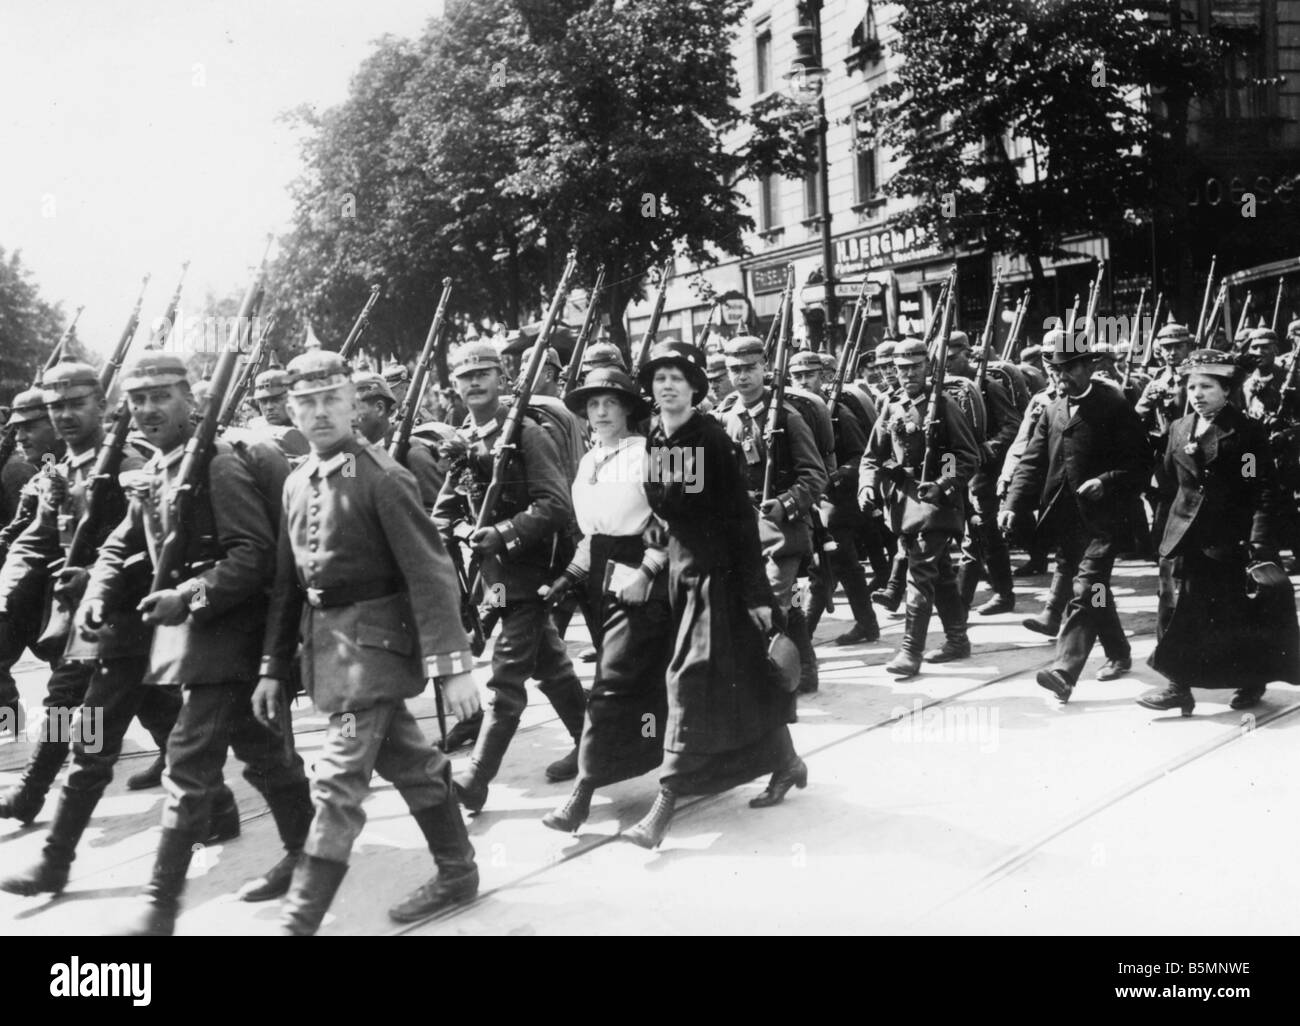 8 1914 8 0 A4 Soldiers and wives Berlin 1914 World War I 1914 18 Berlin Soldiers on their way to the railway station - Stock Image